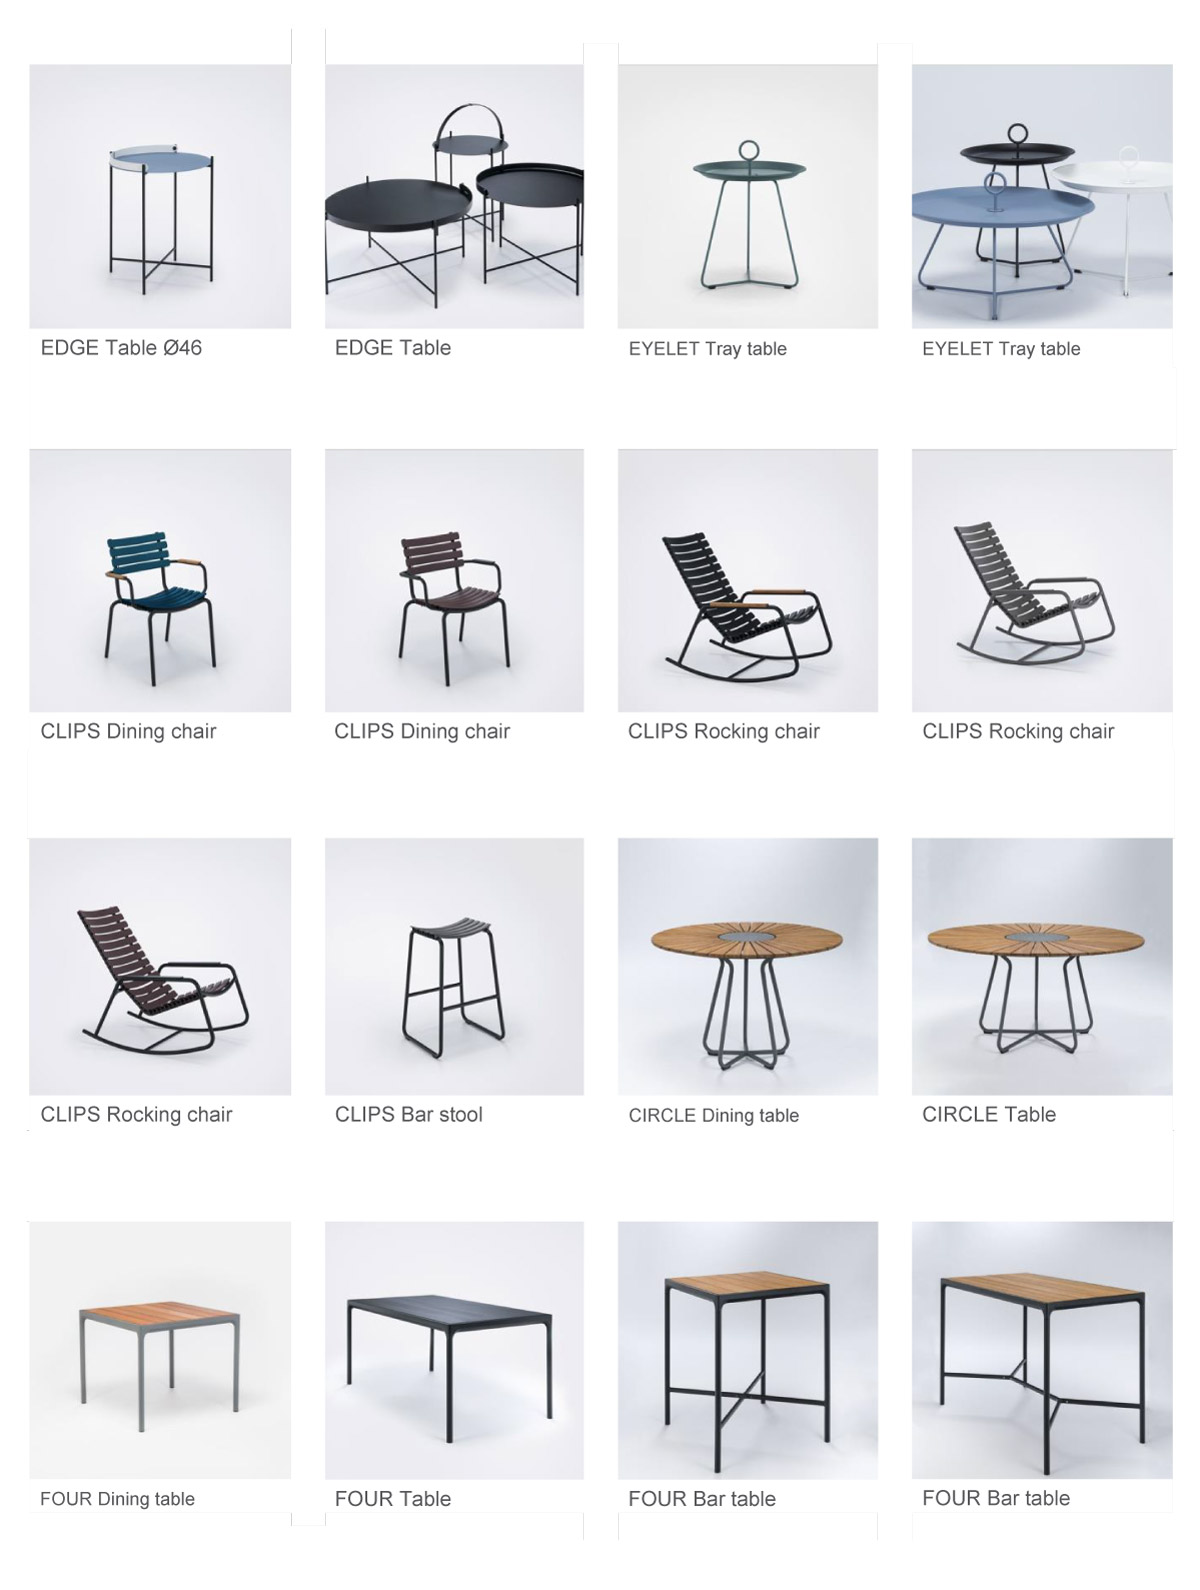 EDGE, EYELET and Other Furniture